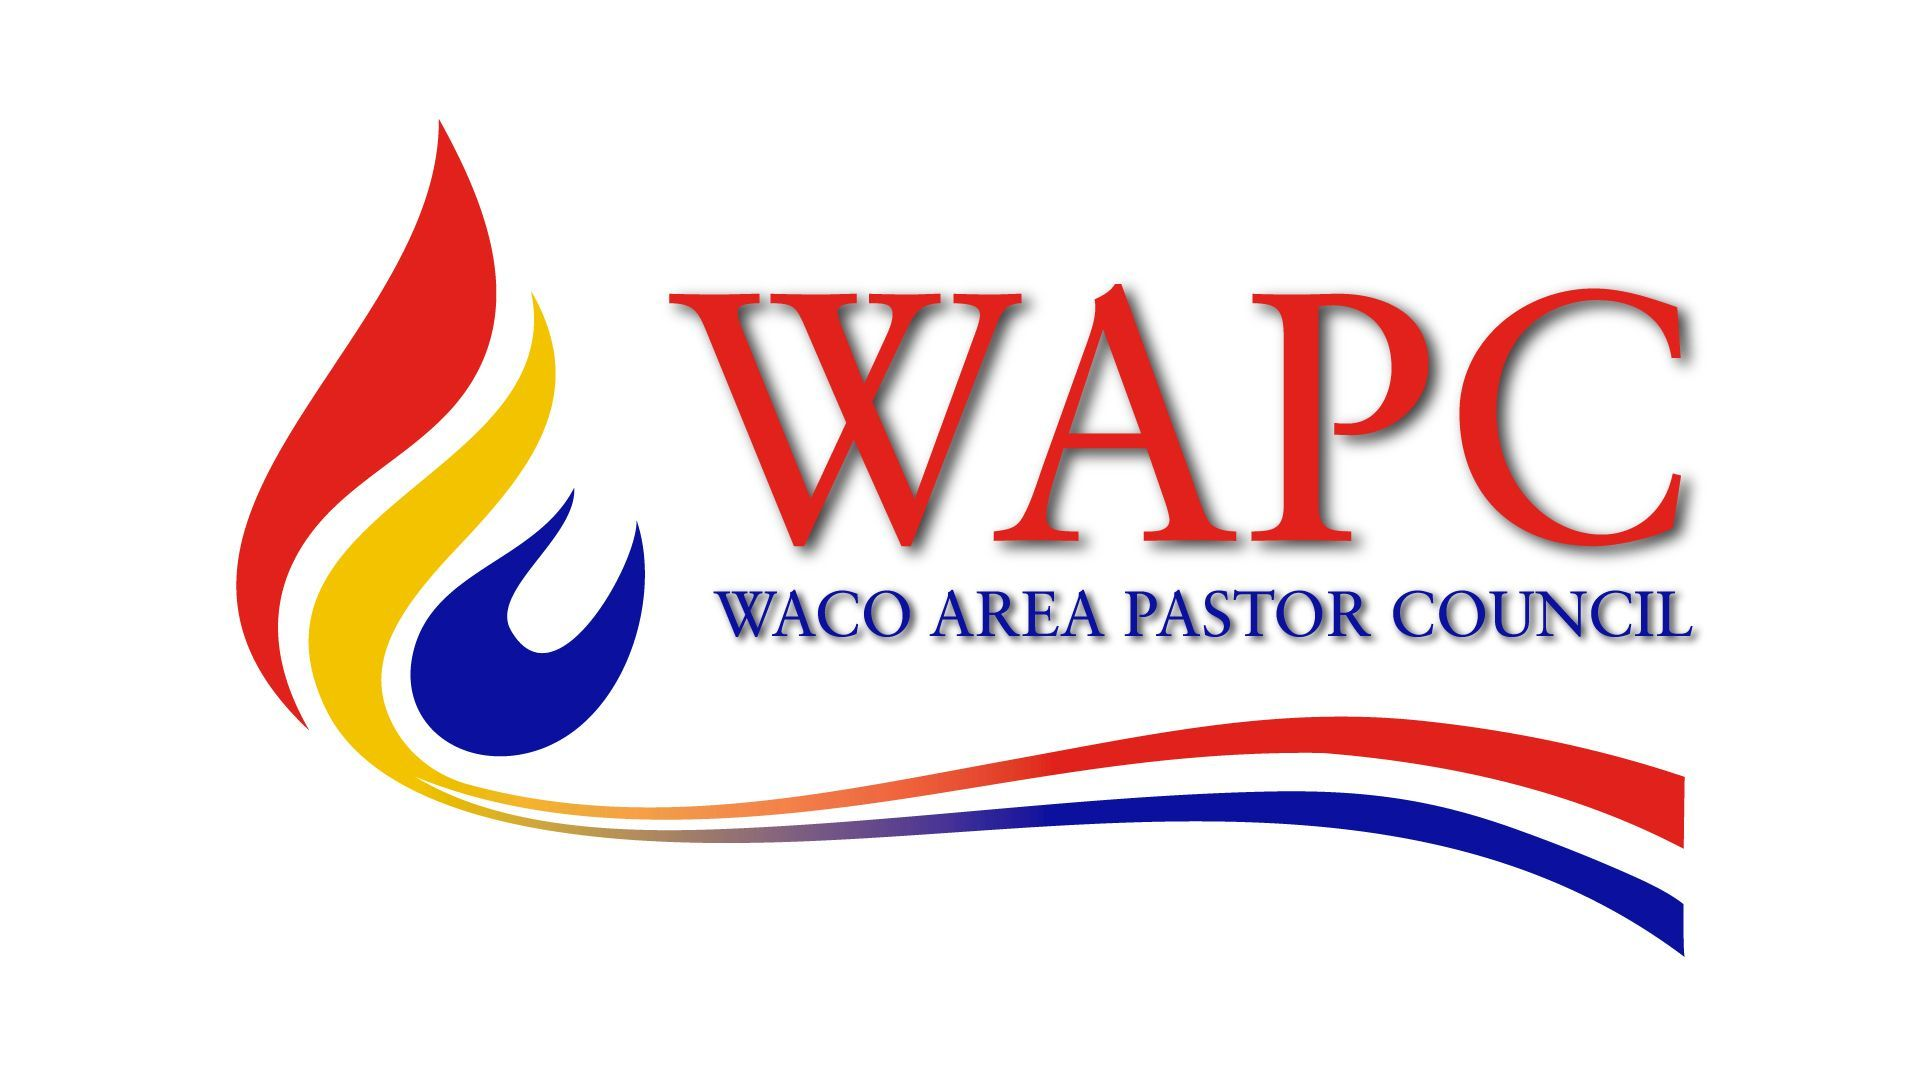 Waco Area Pastor Council ready to launch!